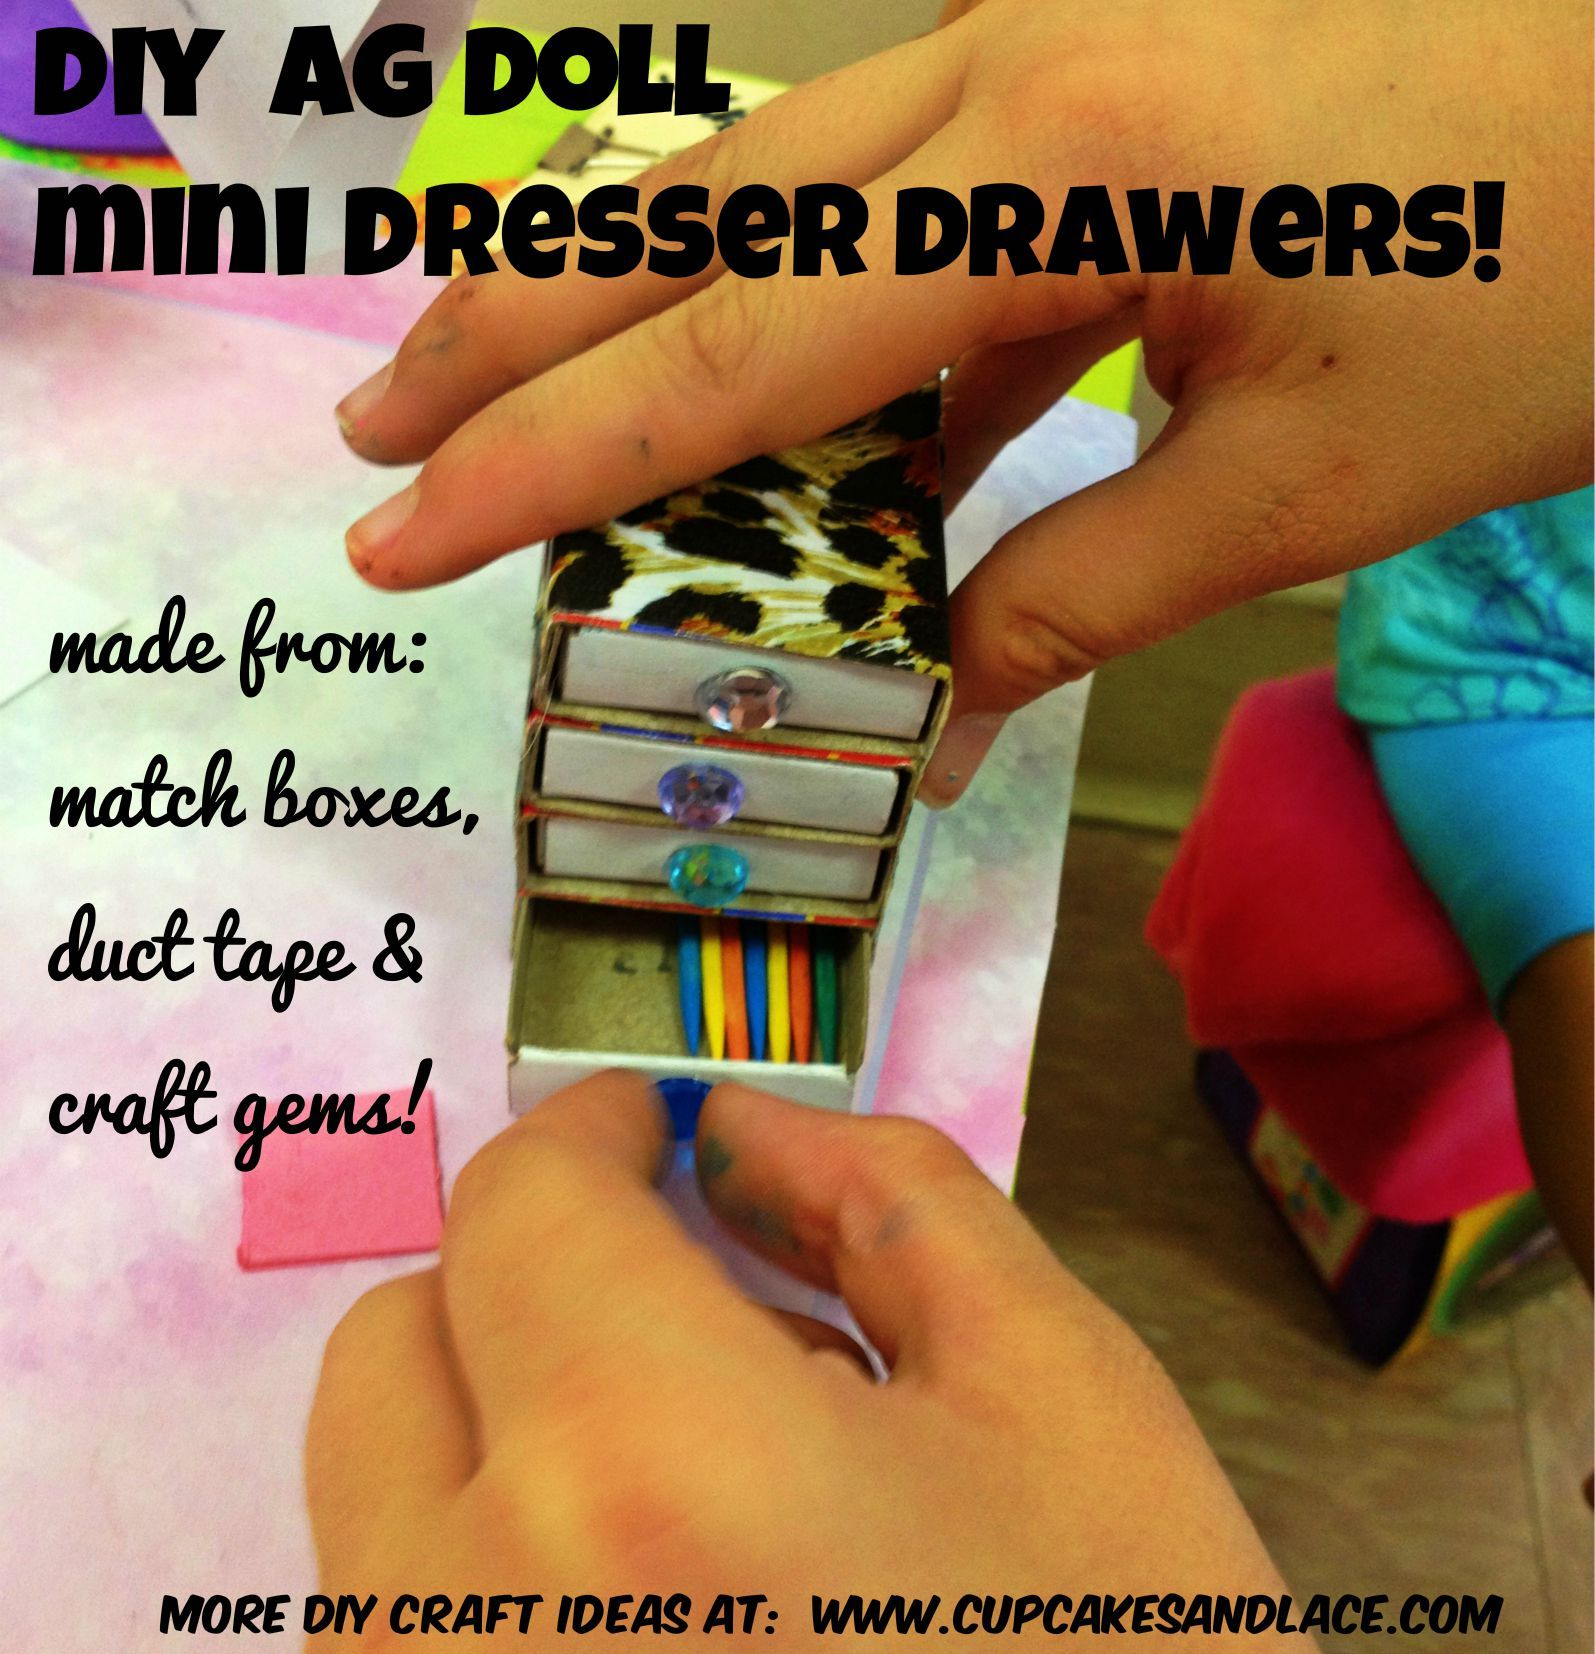 Diy 18 39 39 ag doll mini dresser drawers make it with mini for Mini duct tape crafts